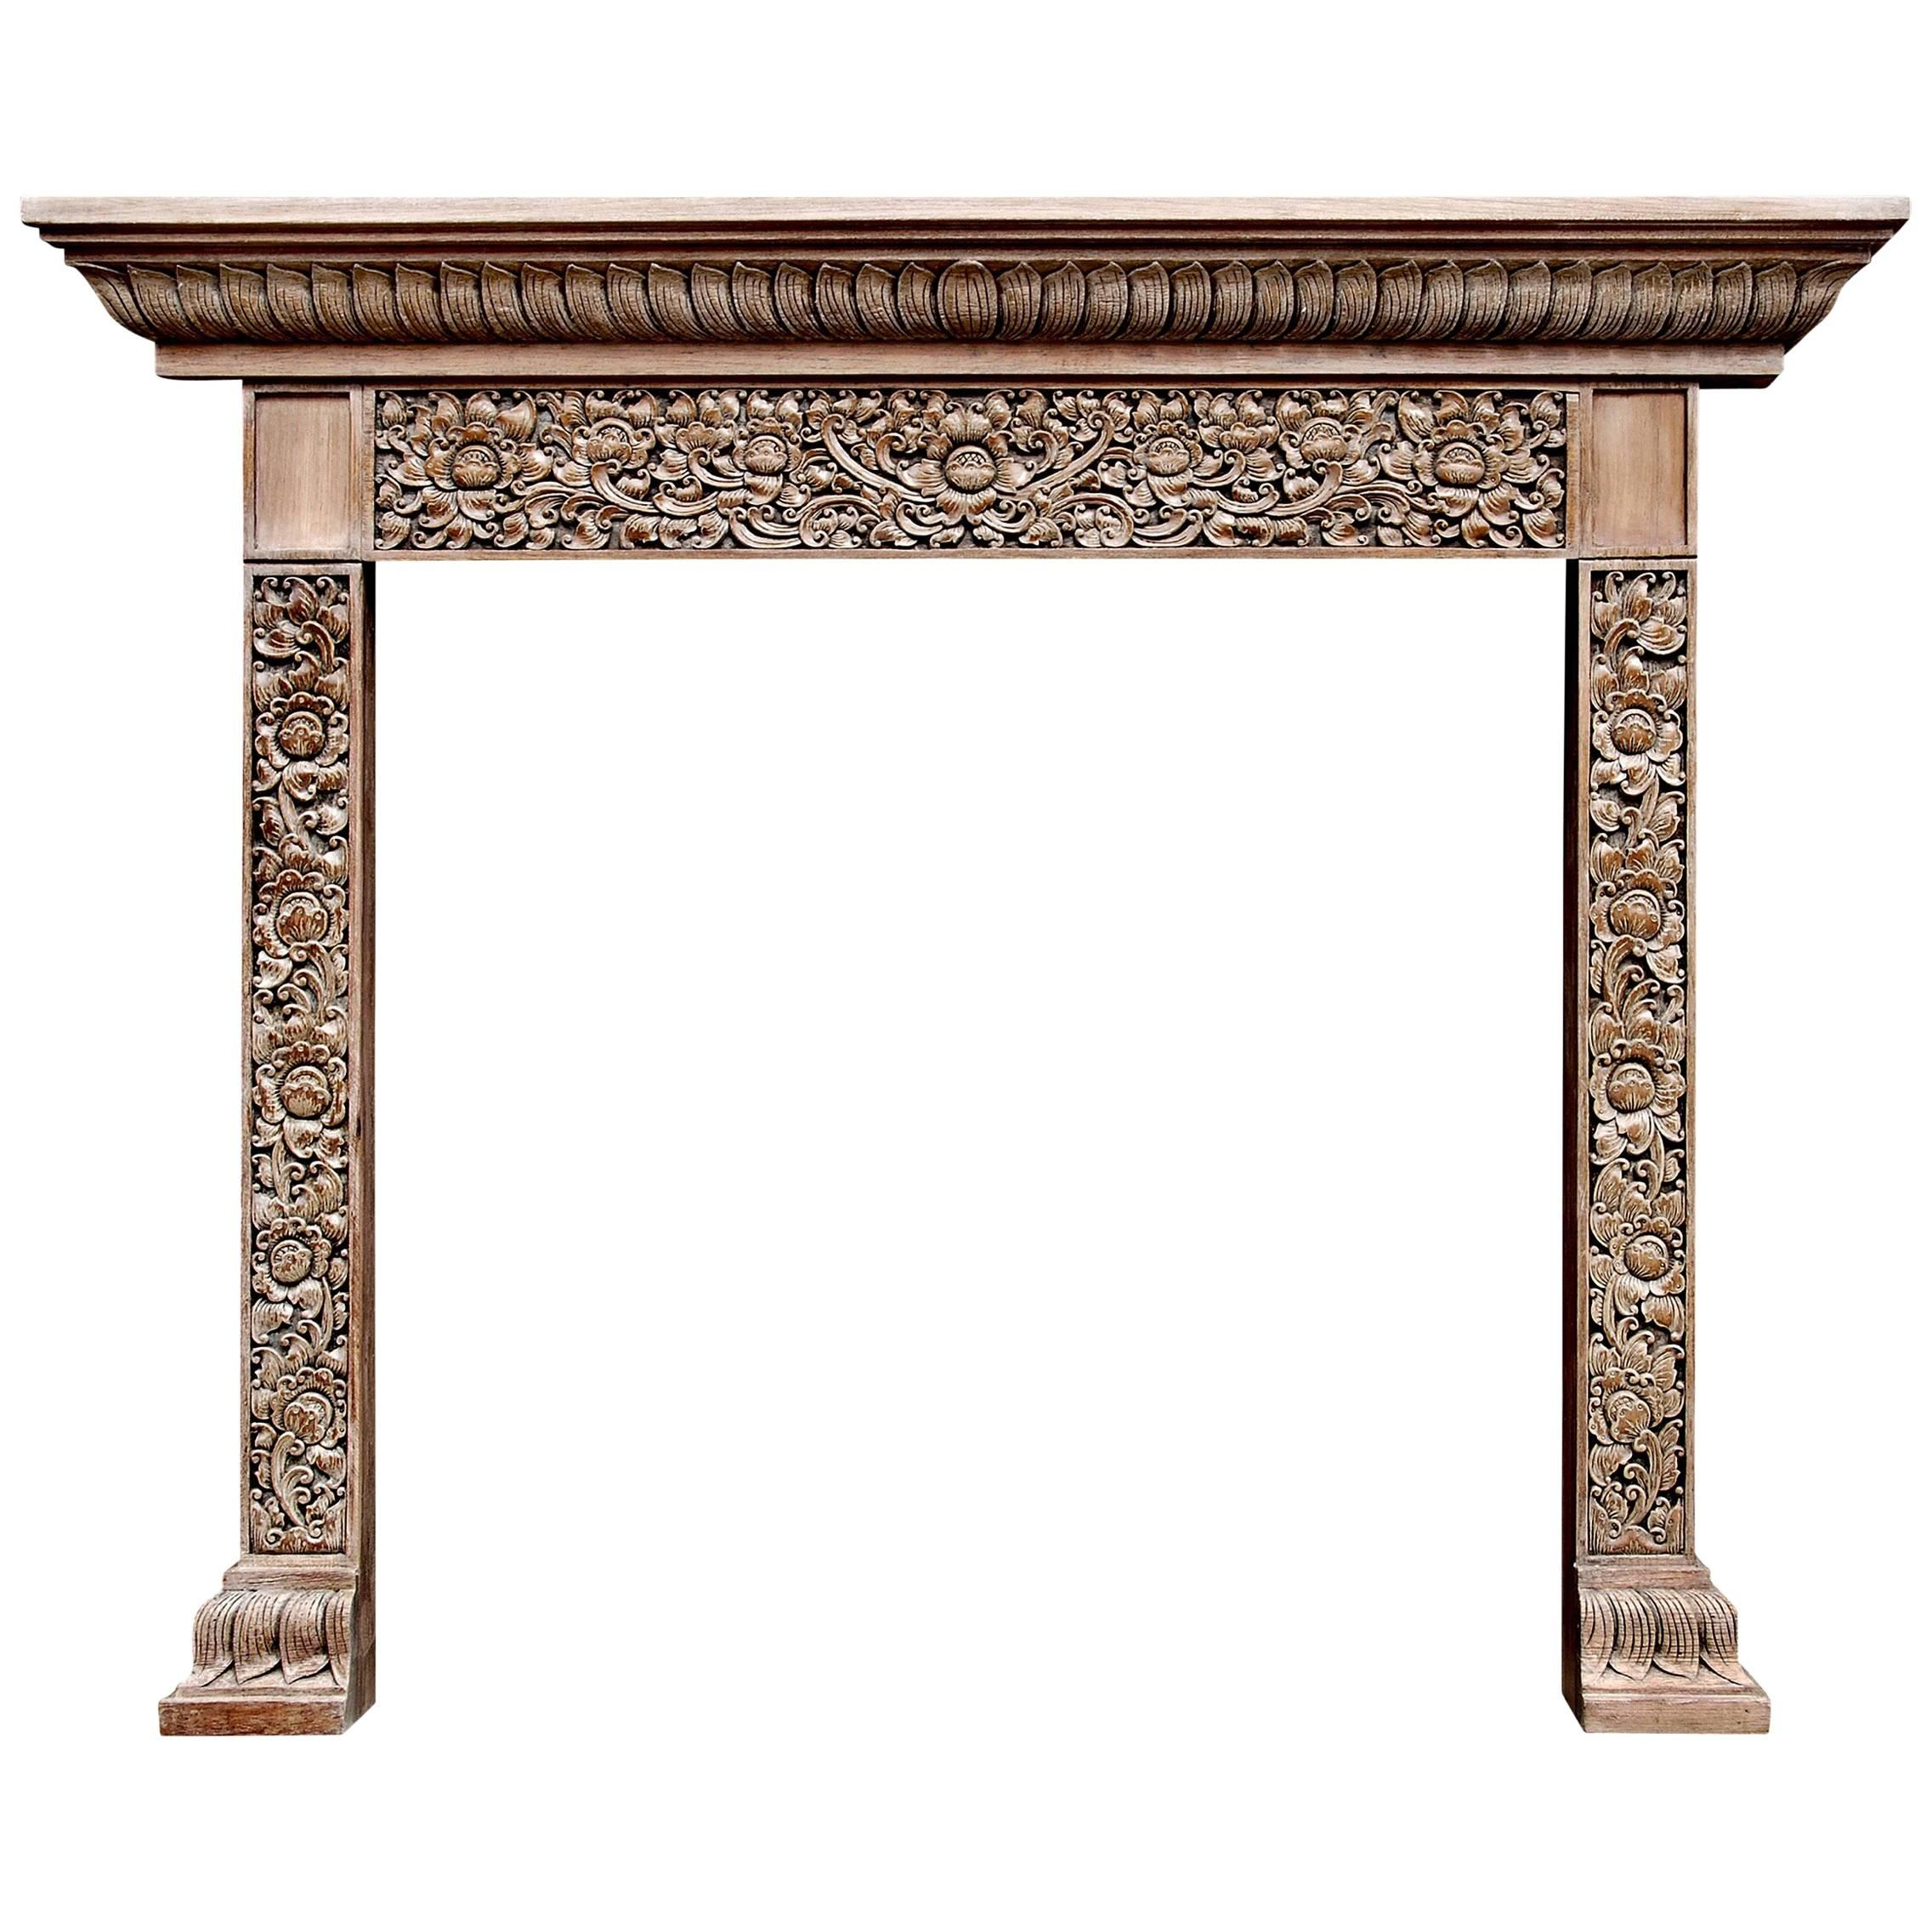 Heavily Carved Hardwood Fireplace With An Oriental Influence